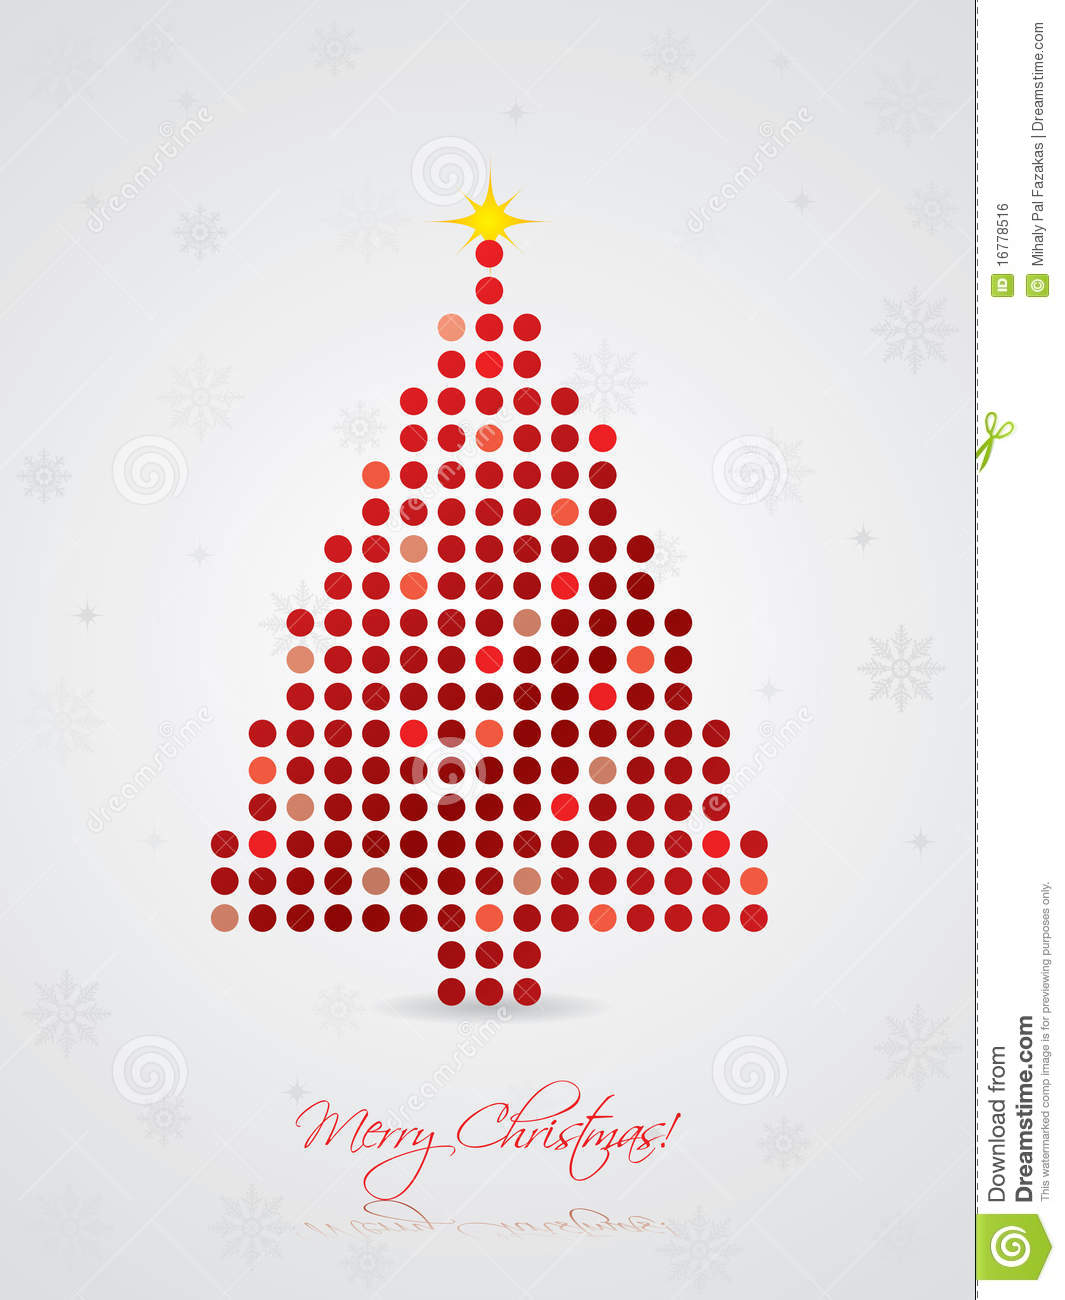 Cool Dotted Christmas Card Stock Vector Image Of Pattern